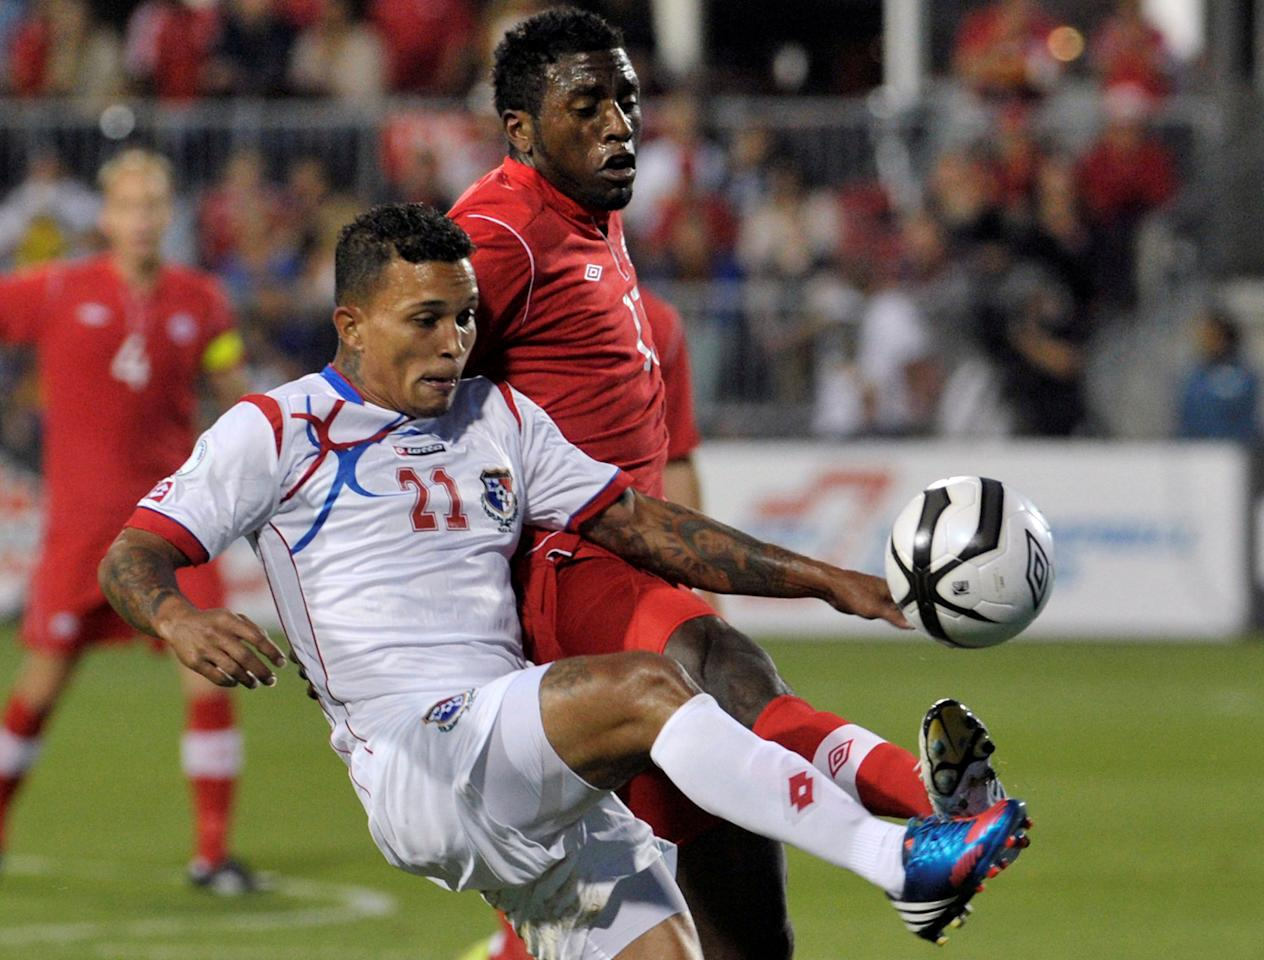 FILE PHOTO - Panama's Amilcar Henriquez (L) fights for the ball against Canada's Olivier Occean during their 2014 World Cup qualifying soccer match in Toronto September 7, 2012.    REUTERS/ Mike Cassese/File Photo